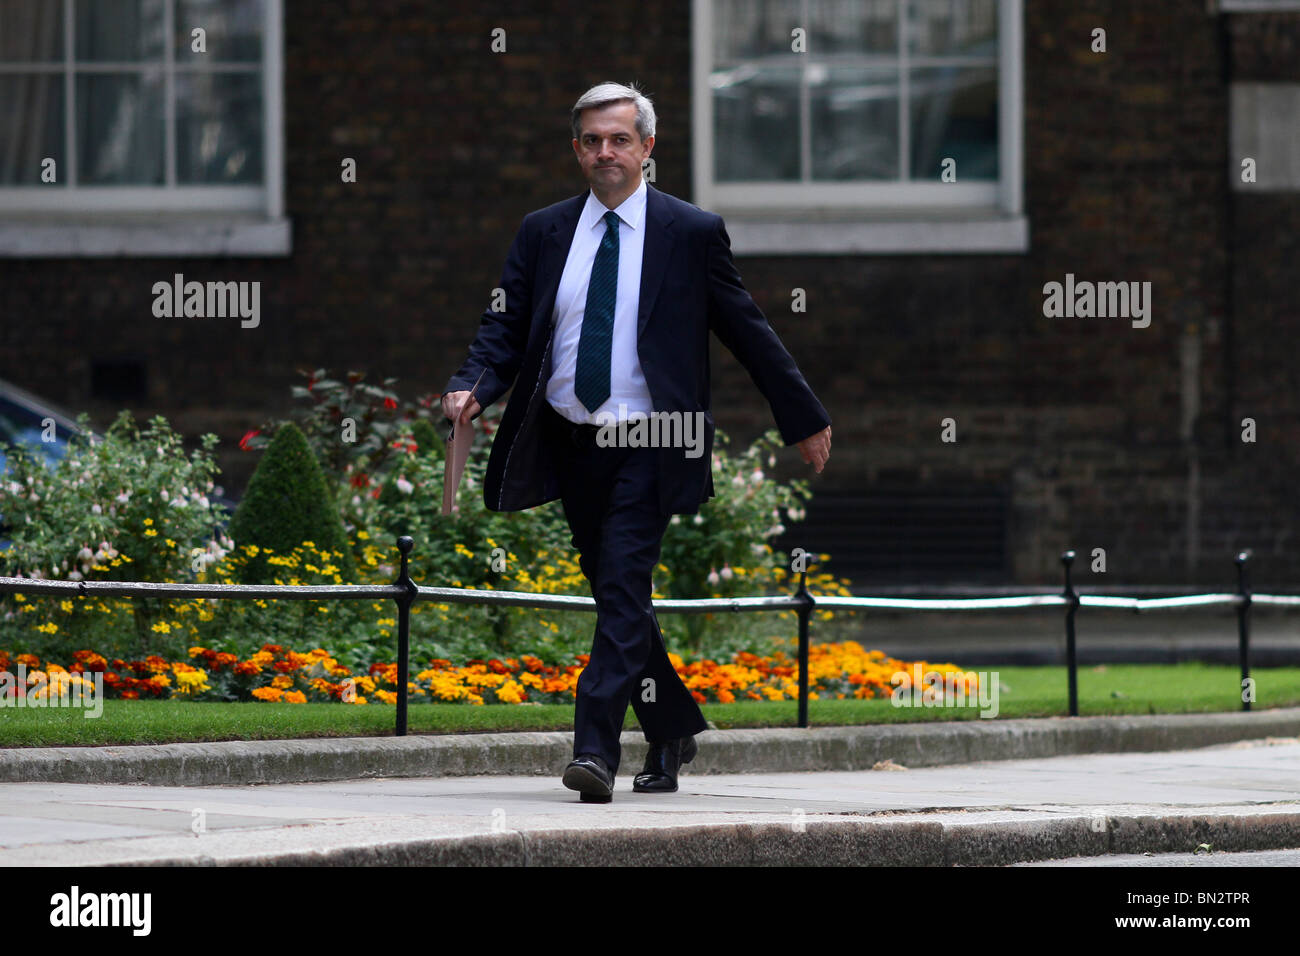 Budget Day . . 22.06.10 Chris Huhne, secretary of state for energy and climate change, arriving for cabinet. - Stock Image